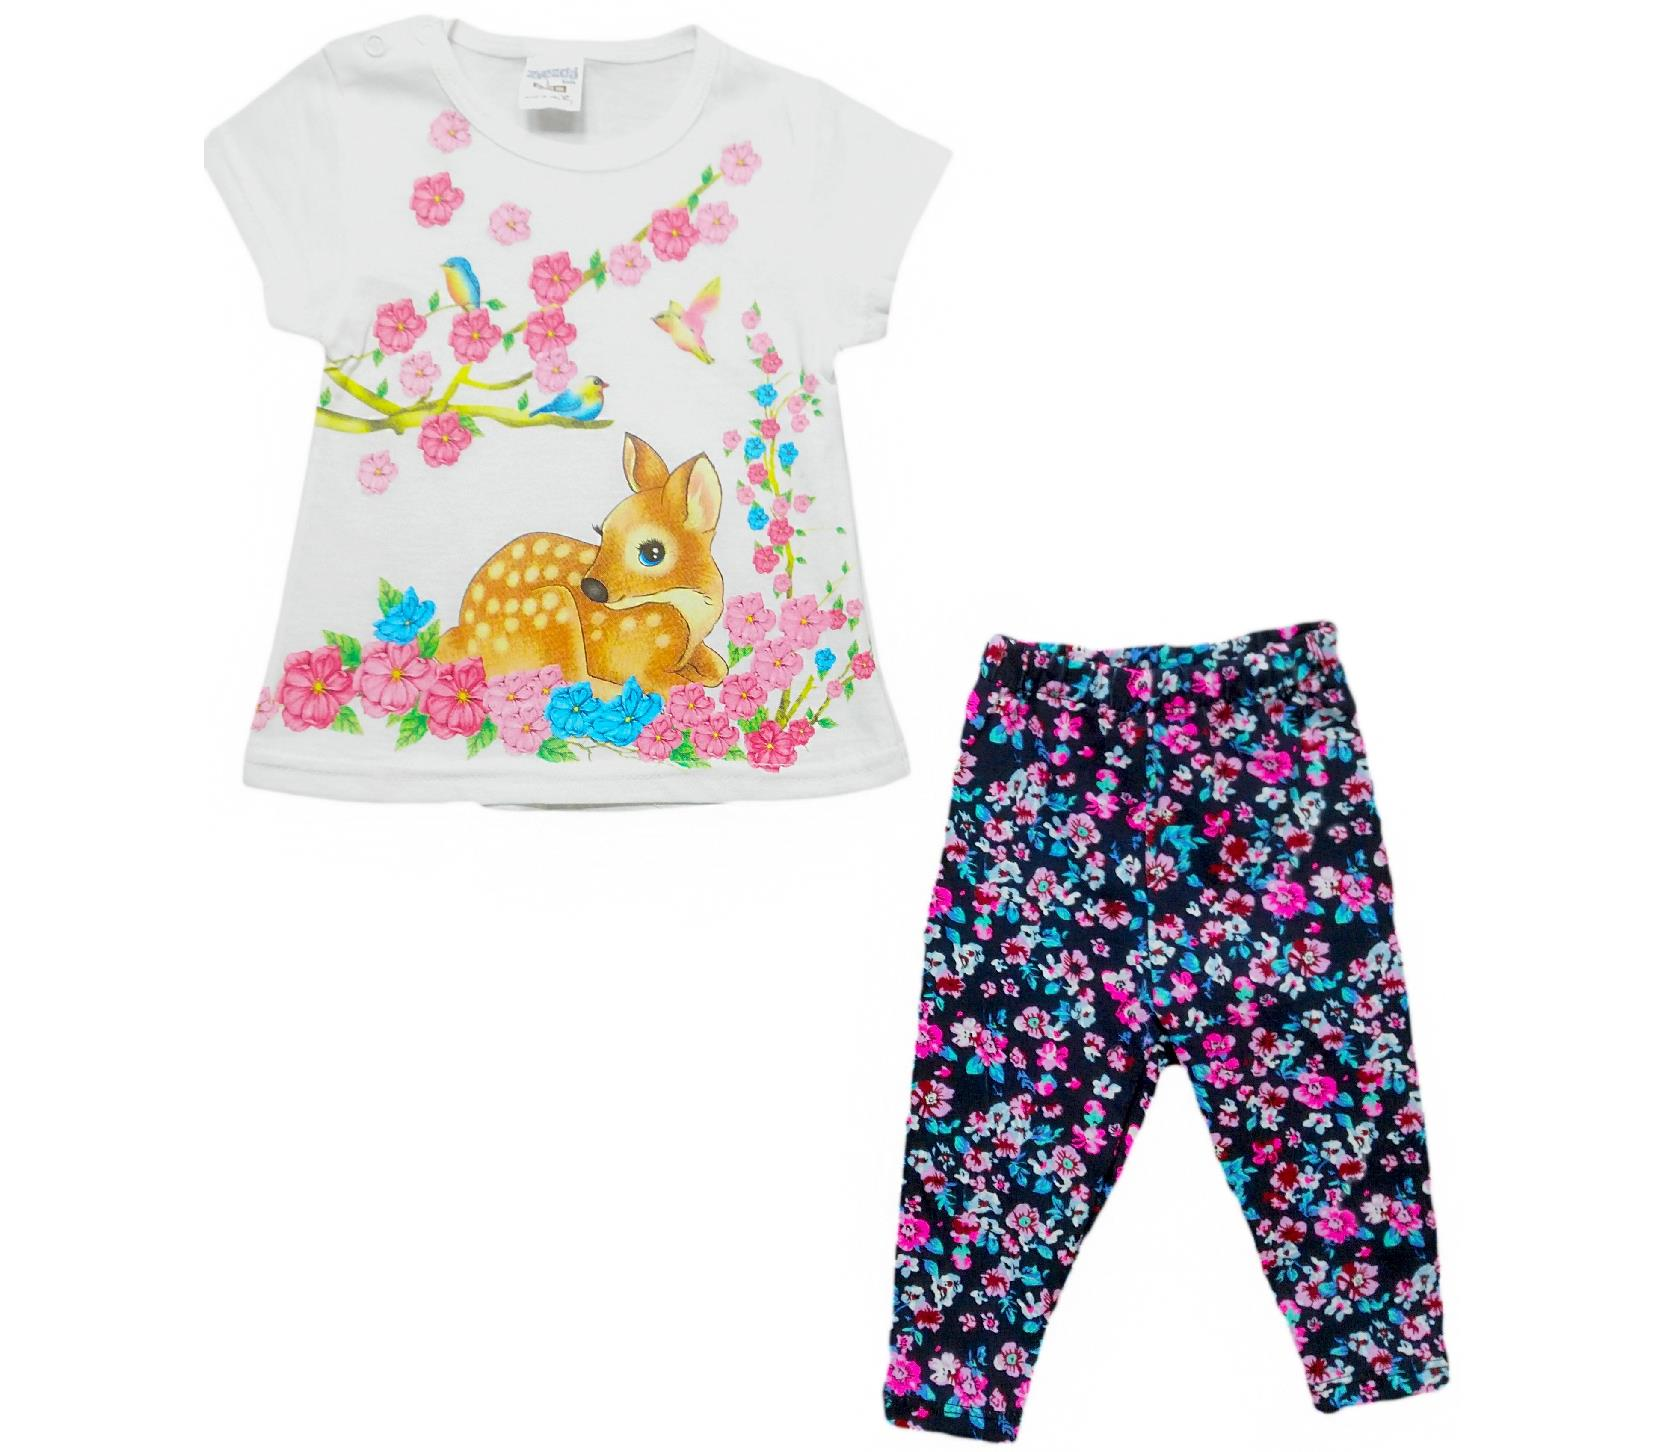 301 Wholesale gazelle printed design t shirt and trouser set for